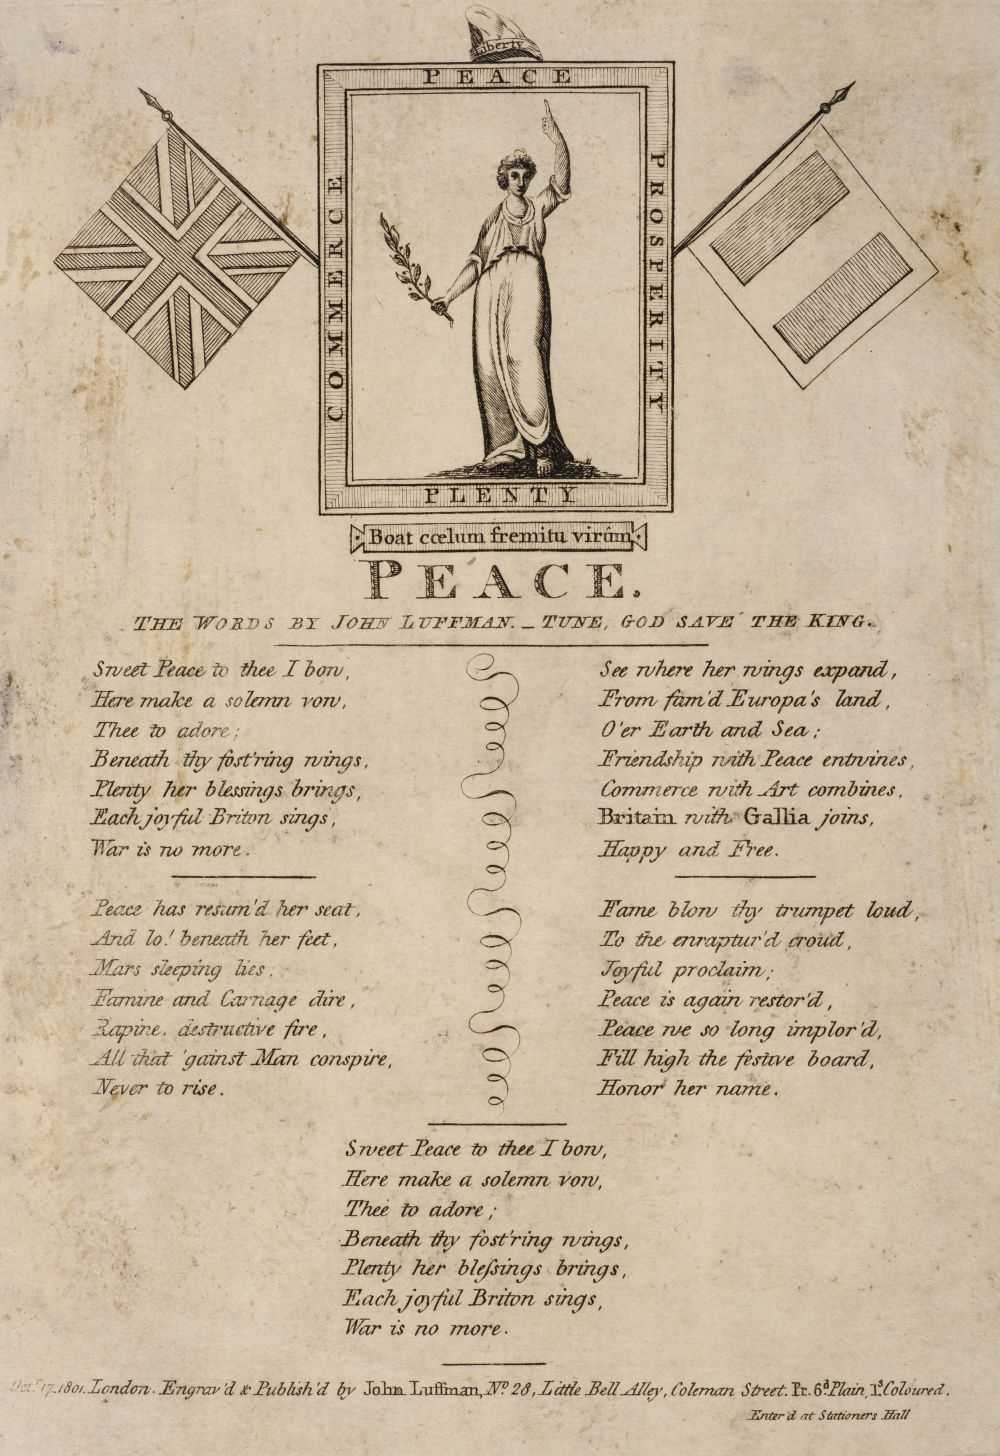 Lot 35 - Napoleonic Broadsides. Peace, the words by John Luffman, October 17, 1801, & others